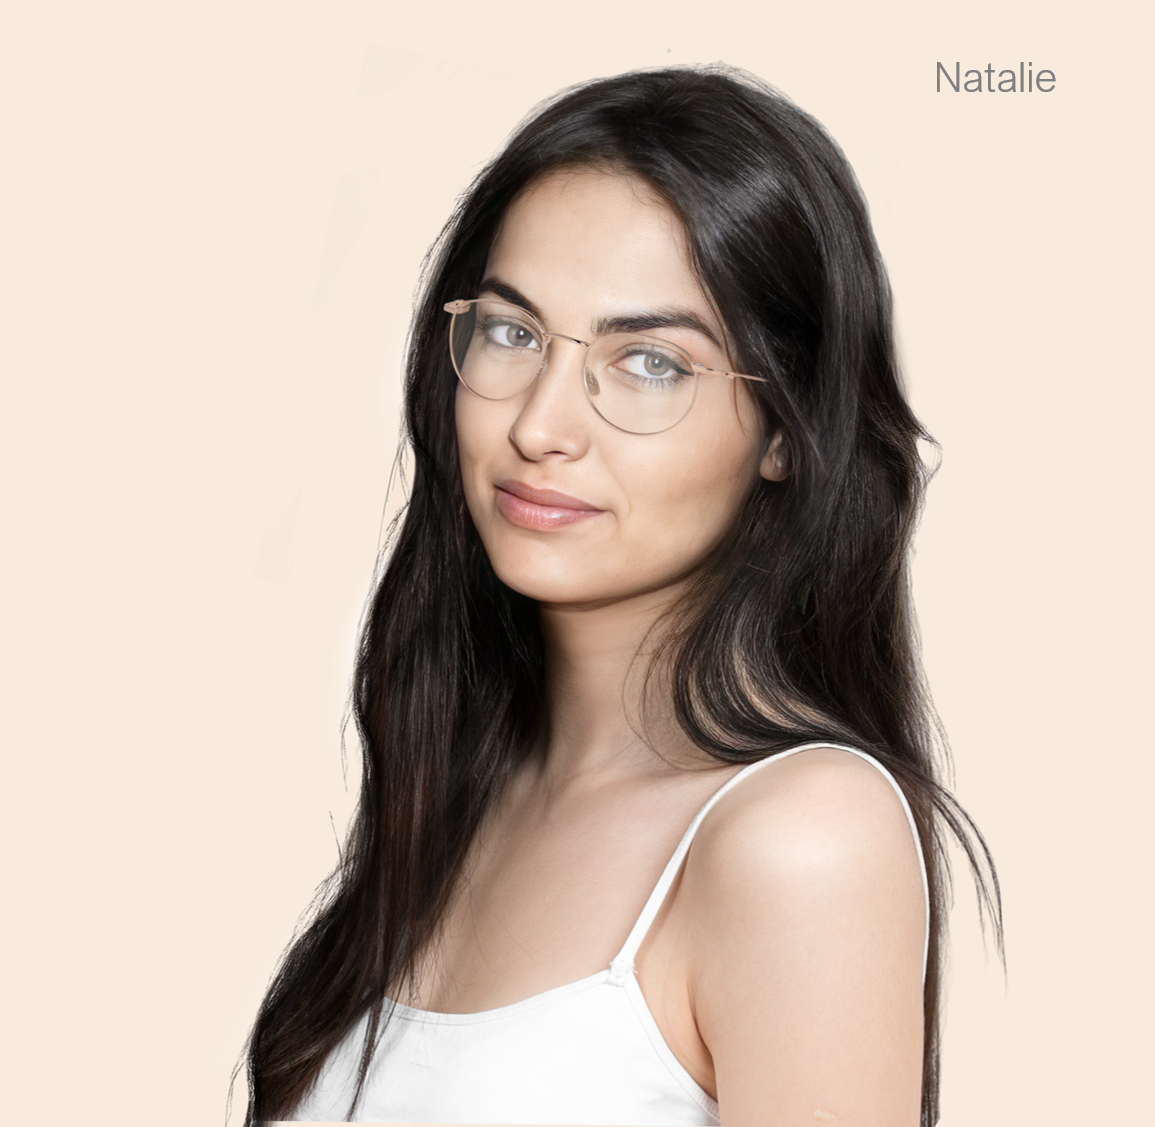 ai generated model natalie wearing opticals